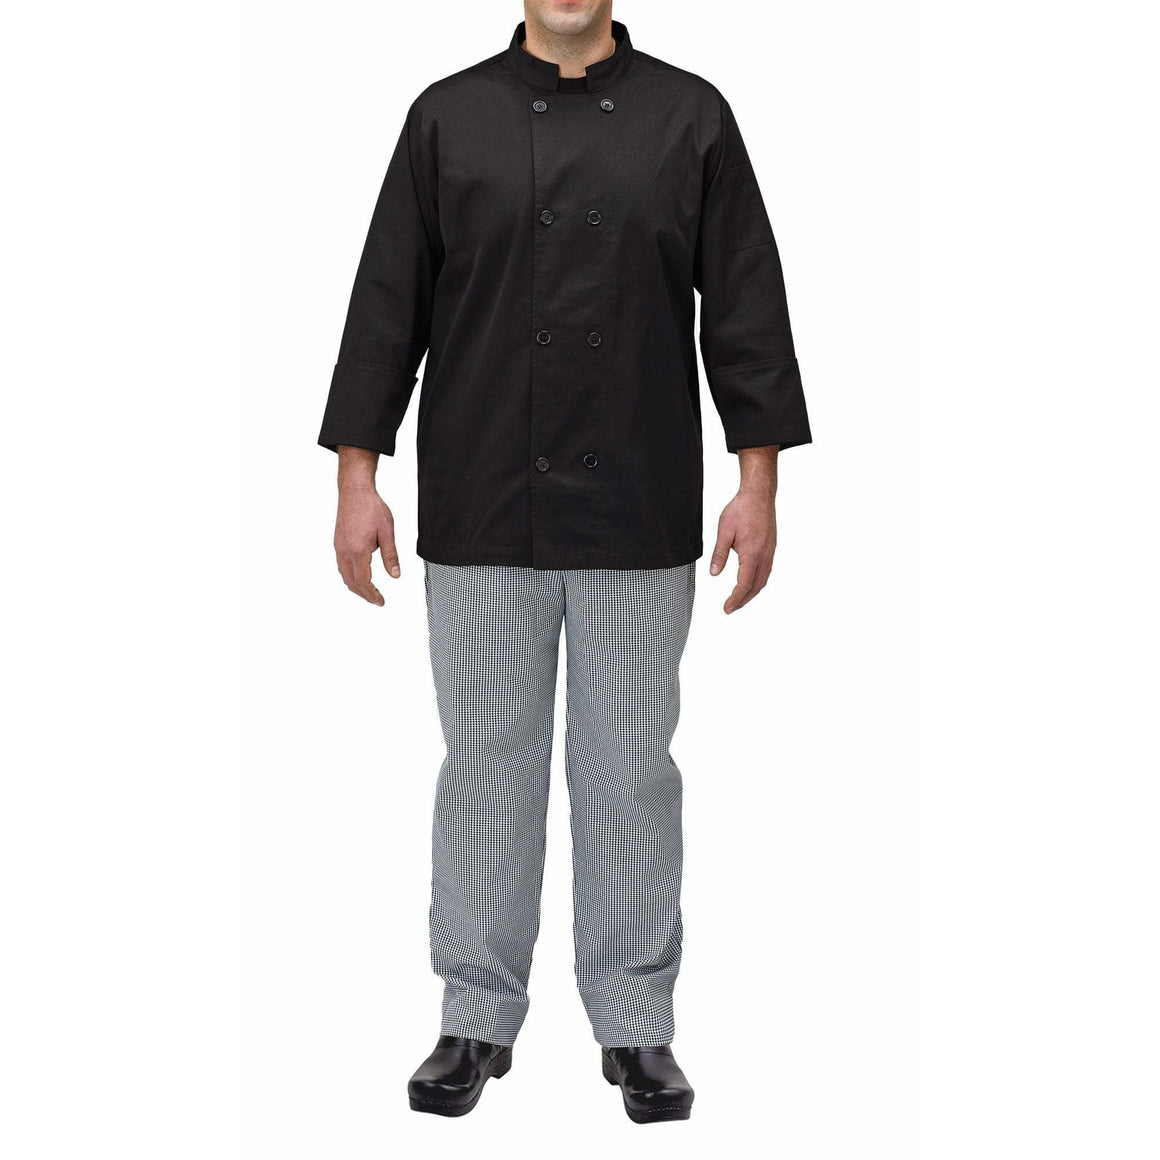 Winco - UNF-5KM - Chef jacket, black, M - Apparel